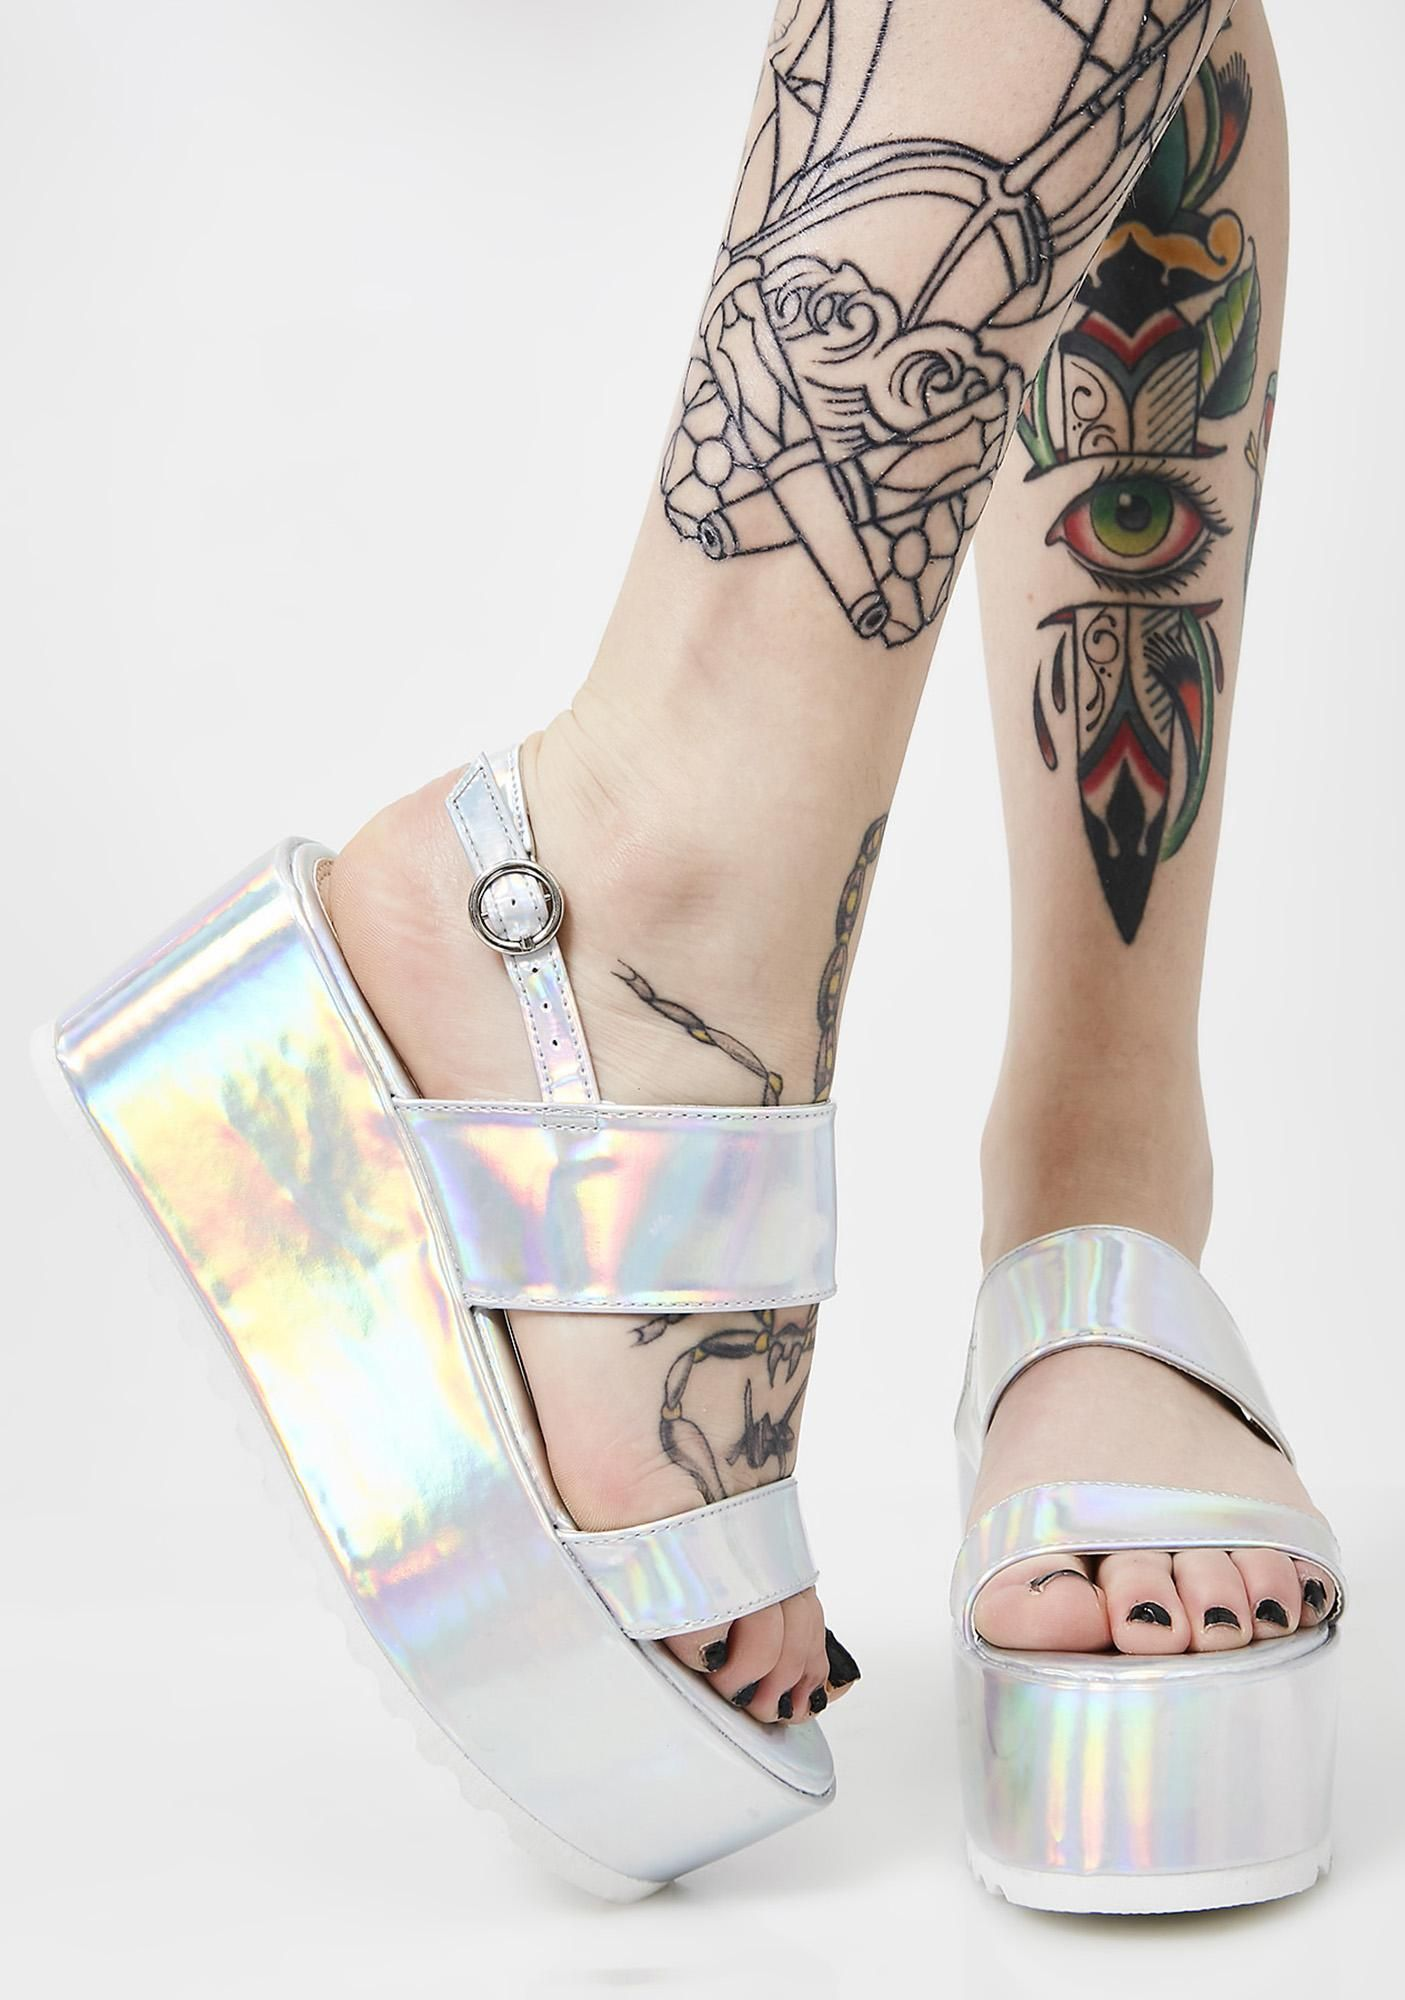 3383622f137 Cosmic Bae Of Light Hologram Platforms will have ya walkin  on rainbowz.  Keep it lit in these super sikk platform sandals that are treaded with a  back ...